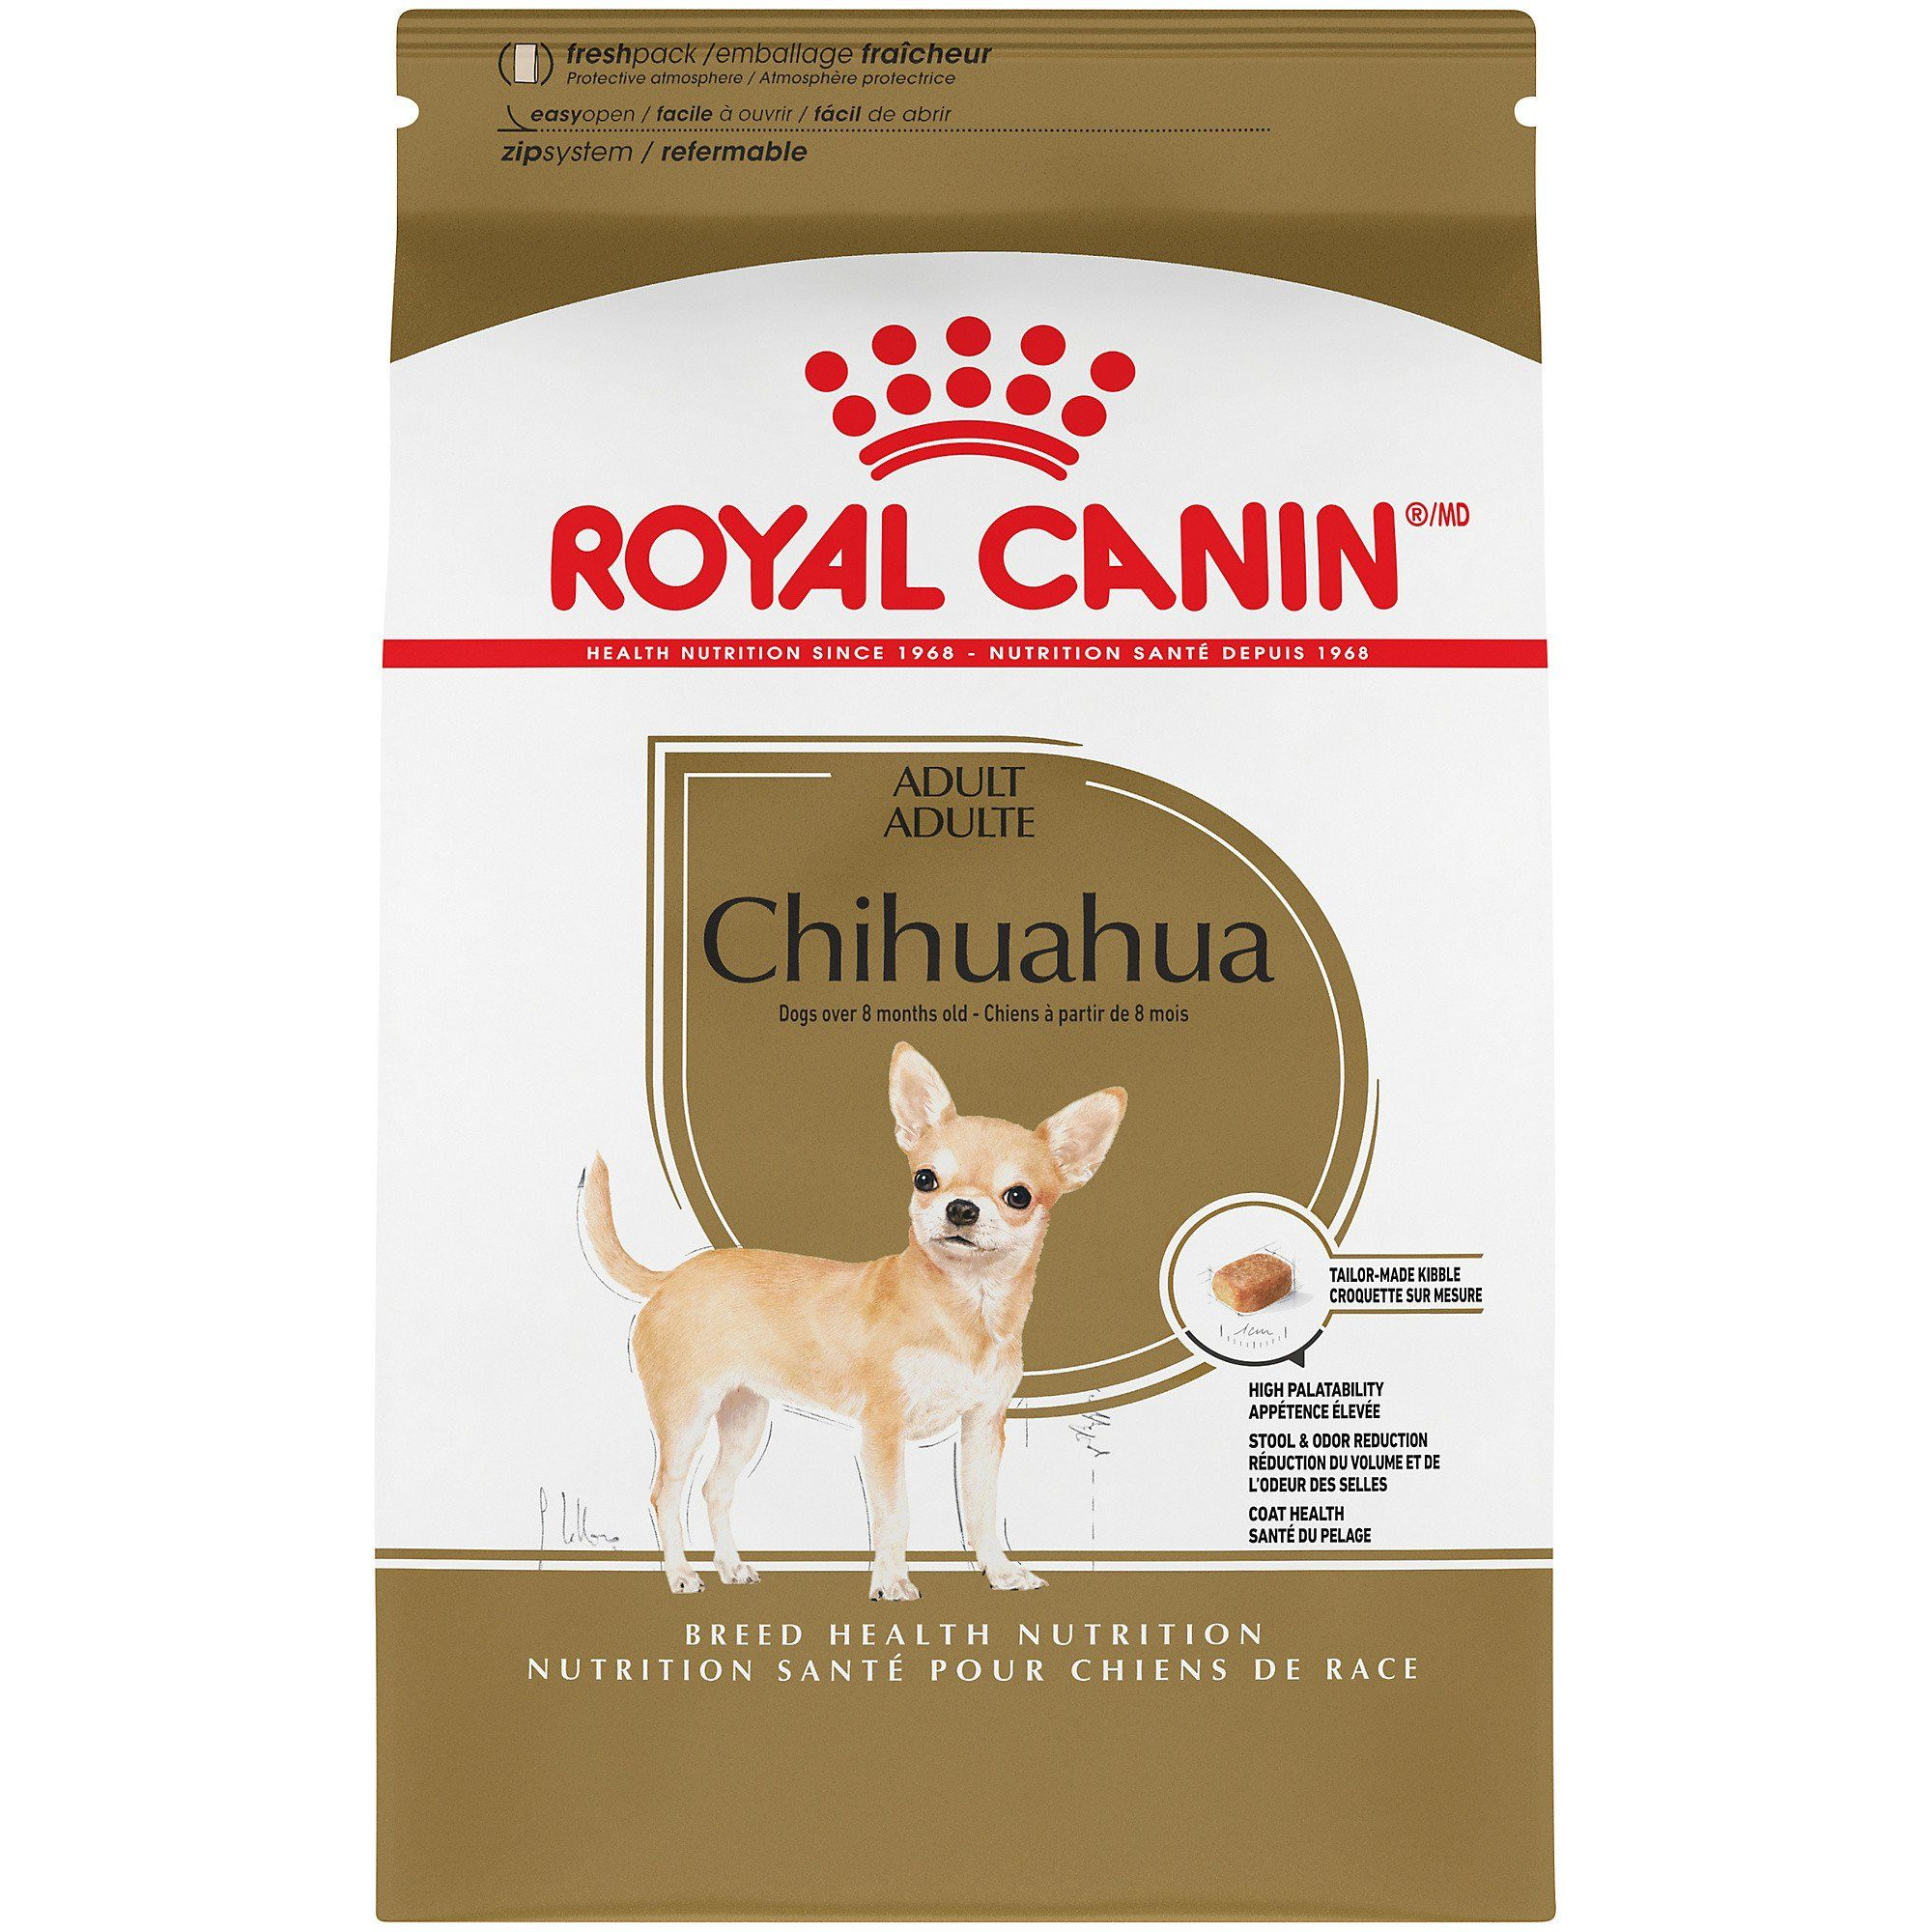 Wretched Dog Training Diy Dogfooddelivery Dogsaccessoriestravel Dry Dog Food Best Dog Food Chihuahua